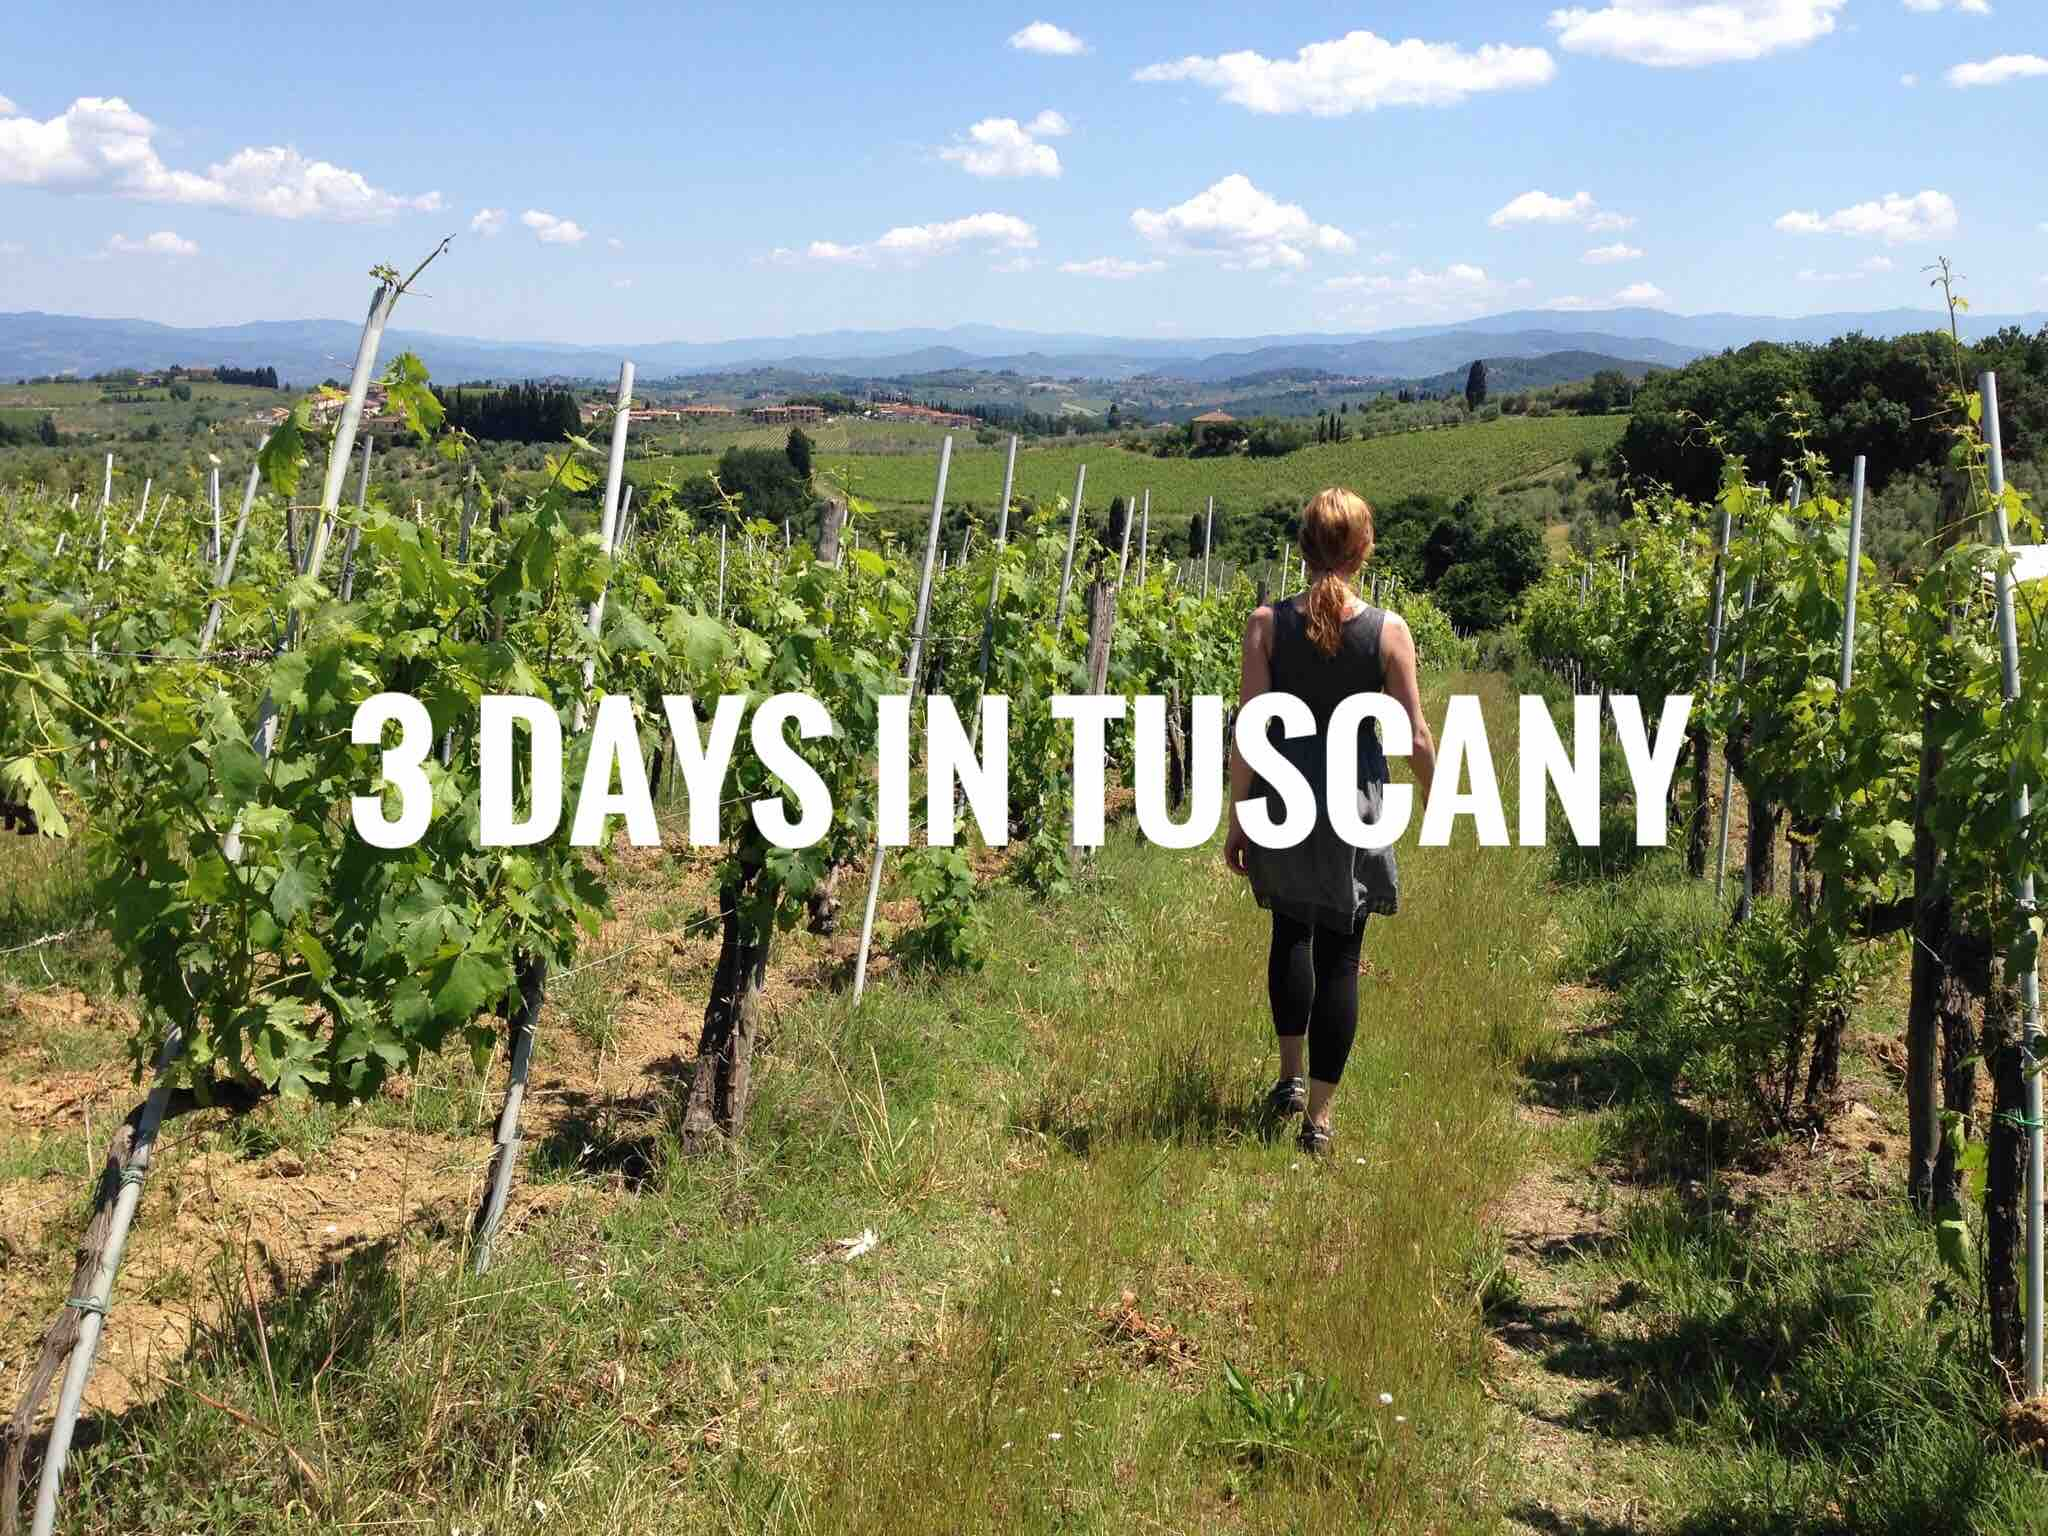 3 Days in Tuscany